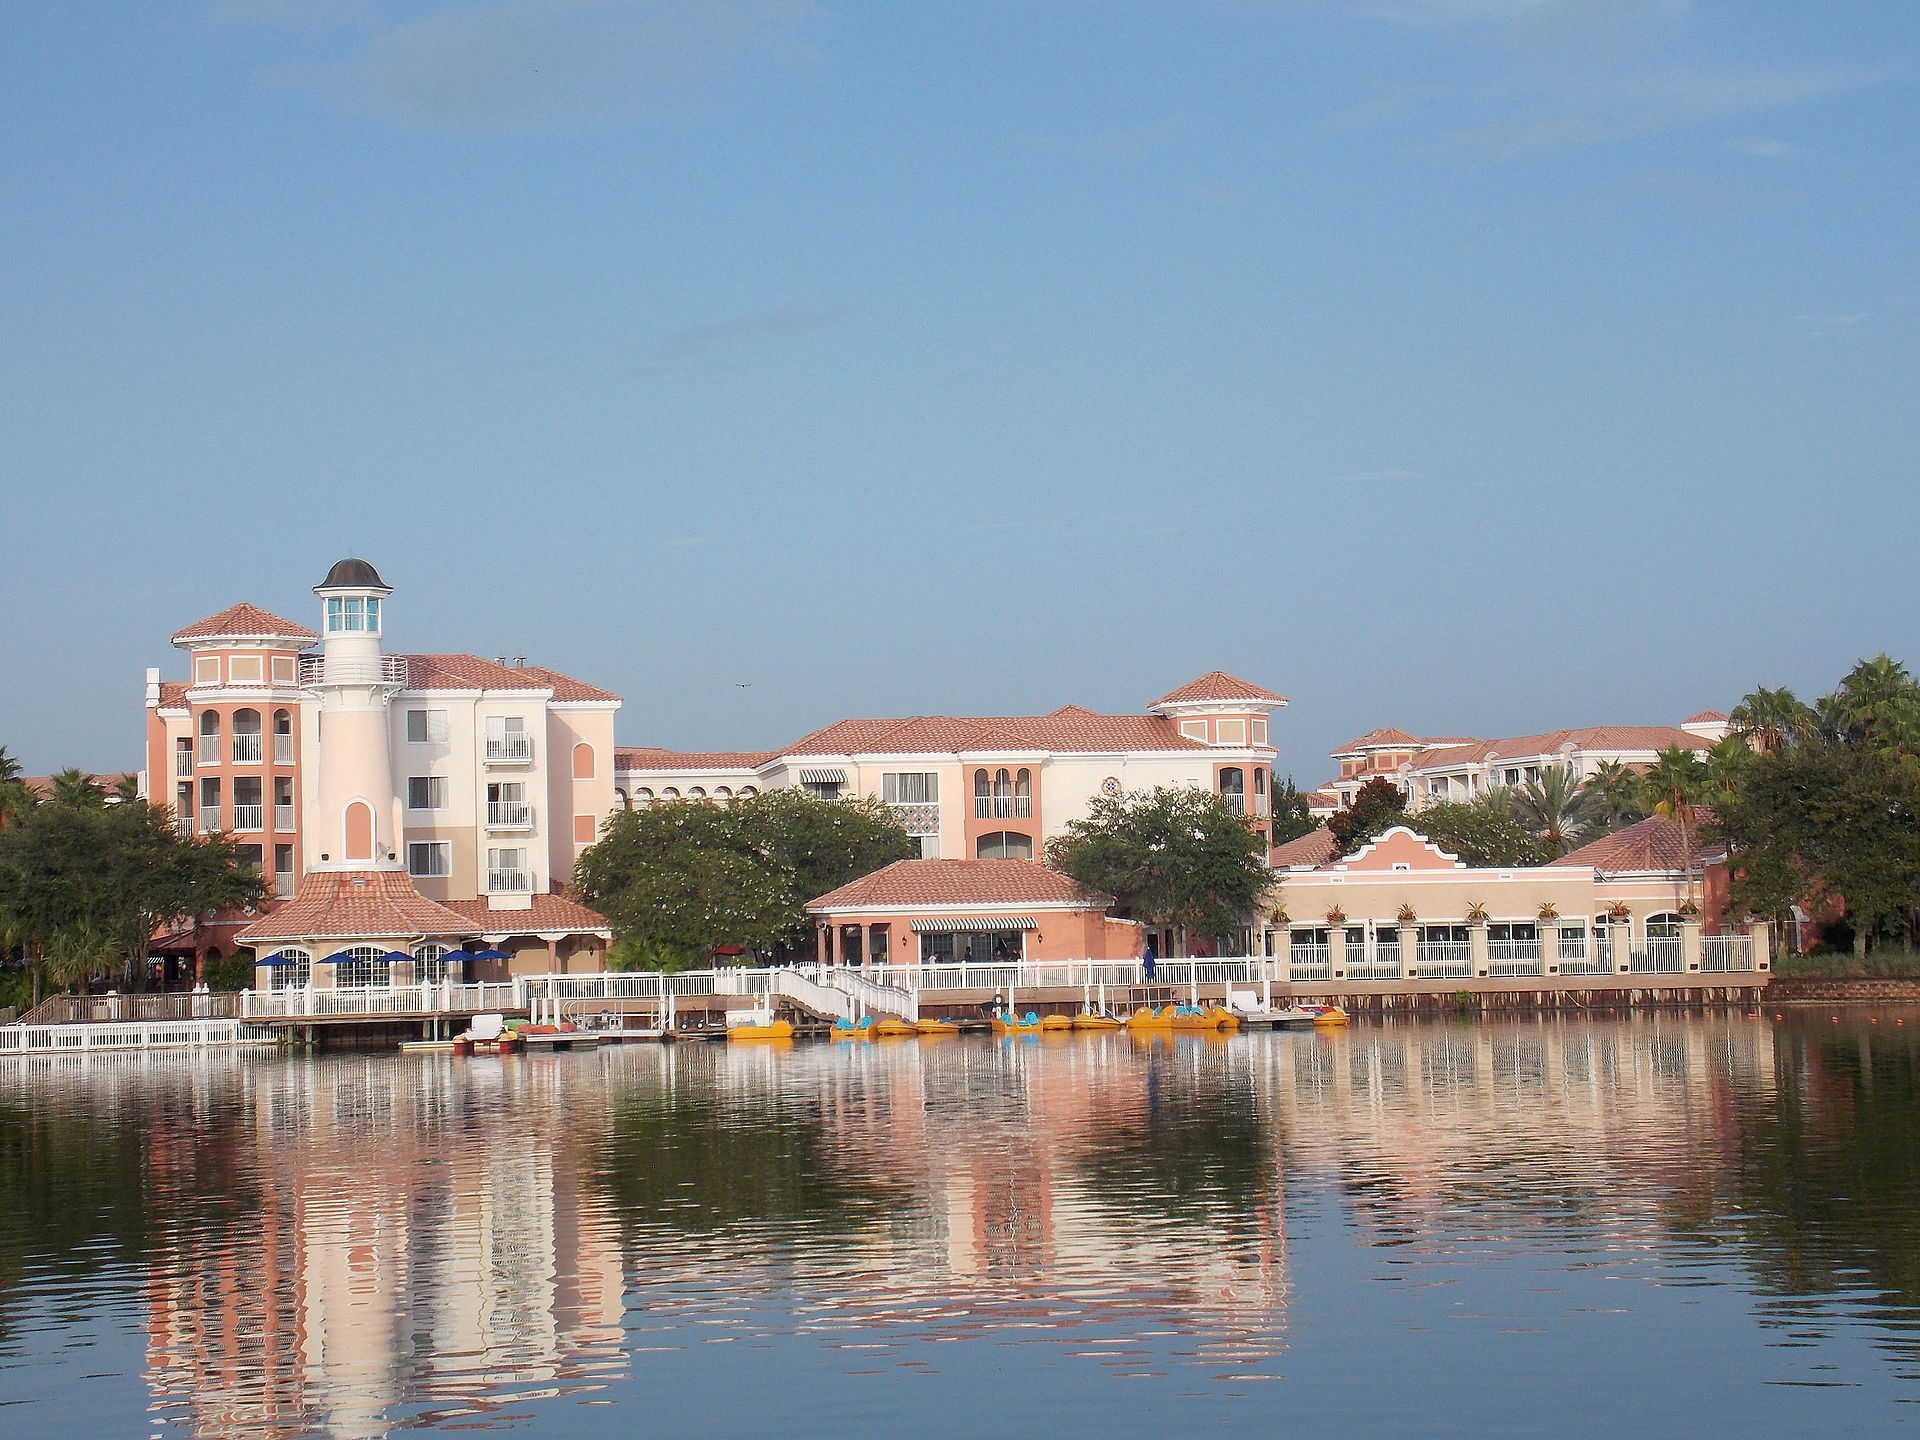 Marriott Vacation Club Vacation Ownership Timeshare Autos Post